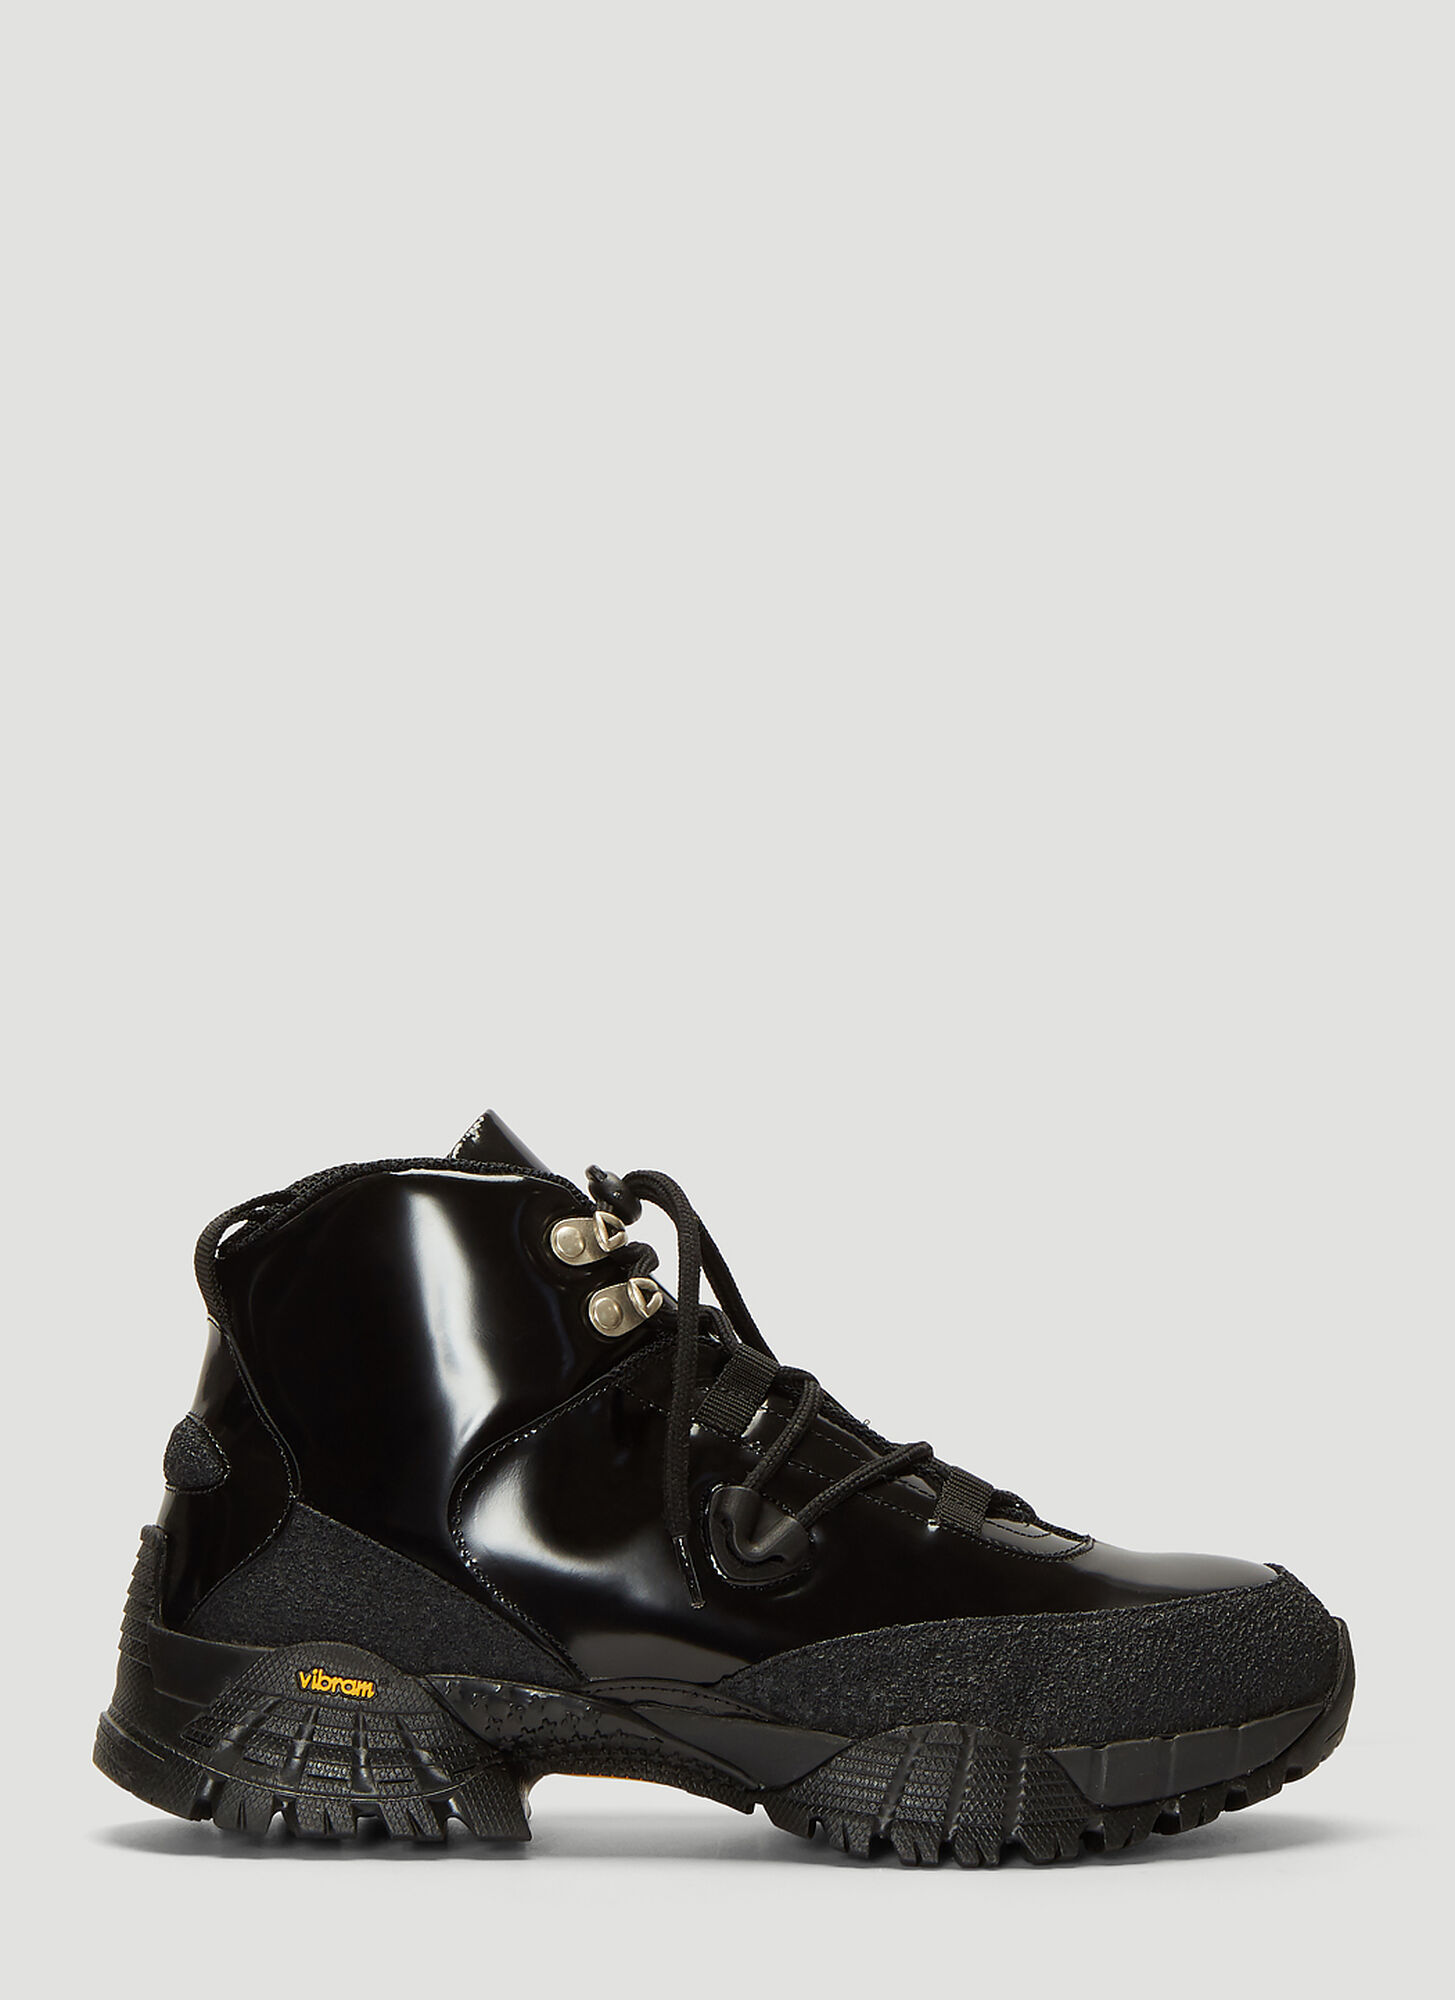 1017 ALYX 9SM Patent Leather Hiking Boots in Black